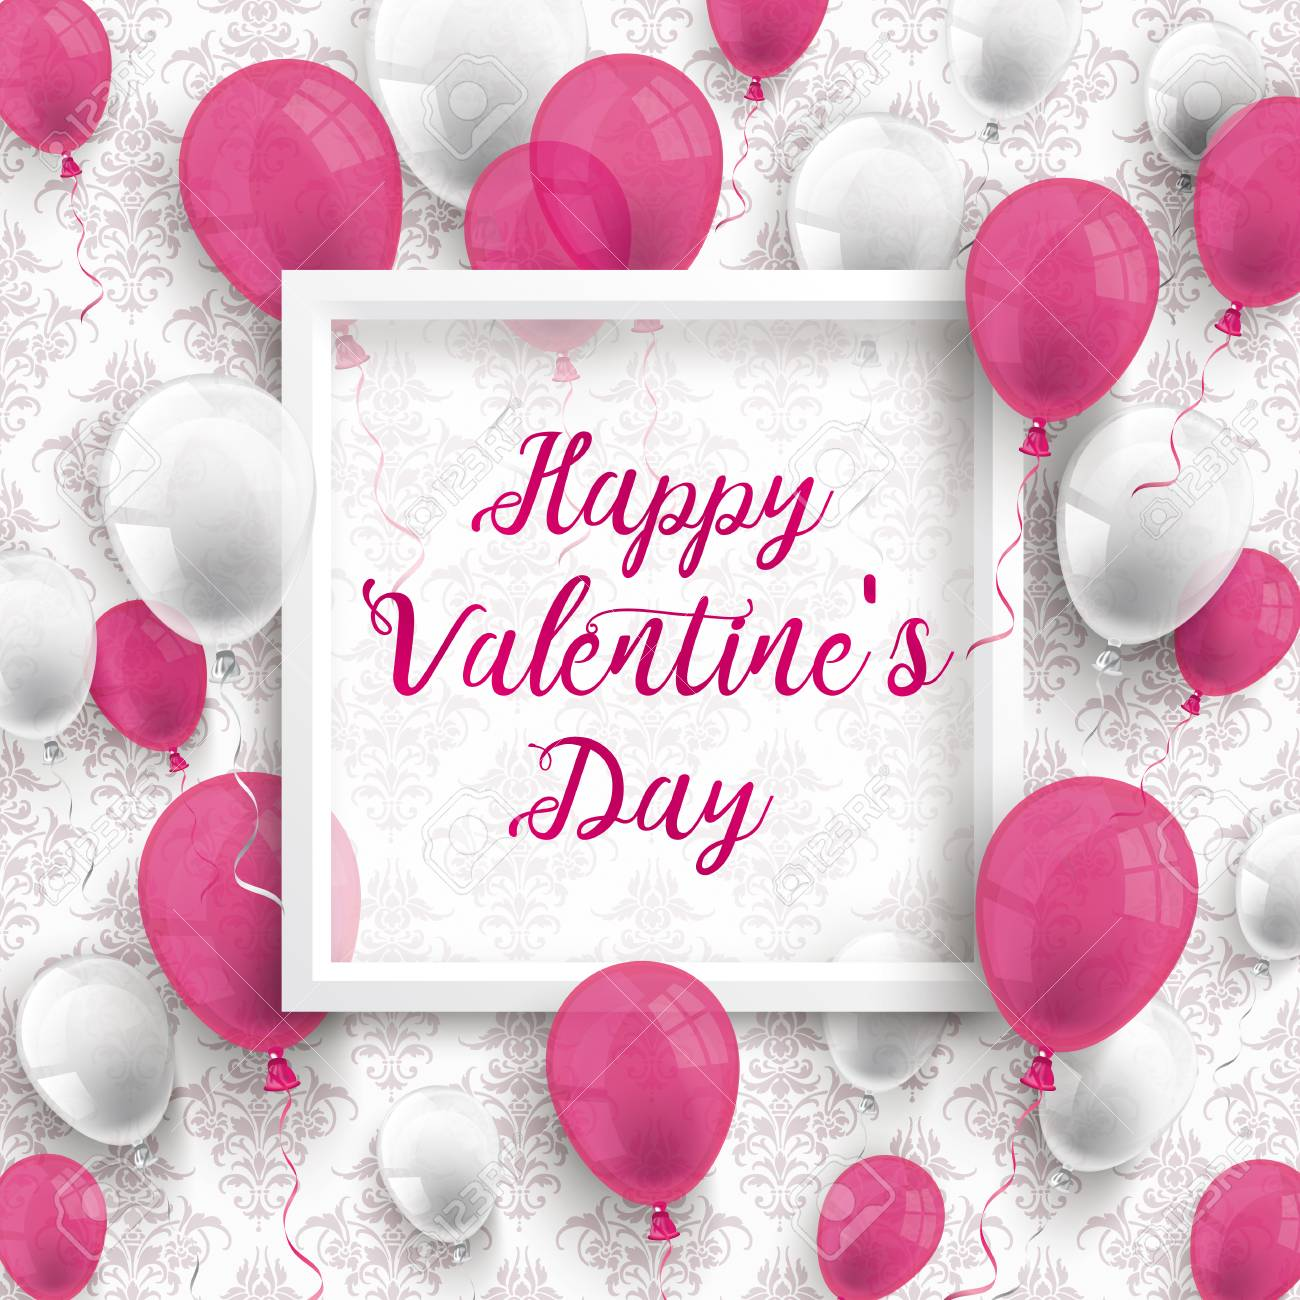 White And Pink Balloons With Frame And Text Happy Valentines